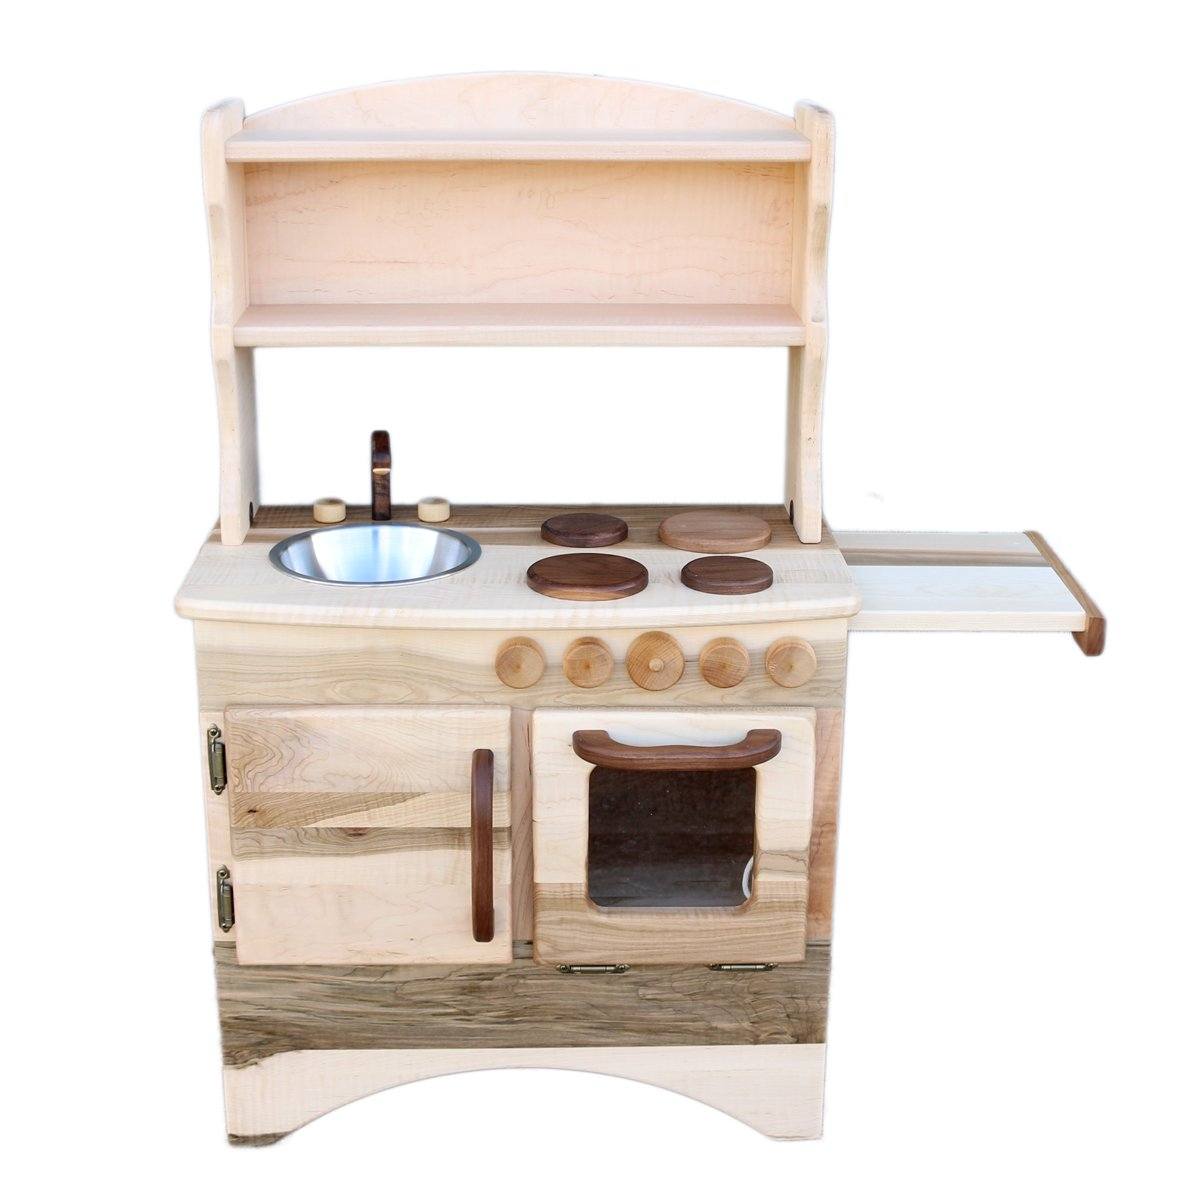 Camden Rose Simple Hearth (Child's Maple Wood Play Kitchen with Hutch)